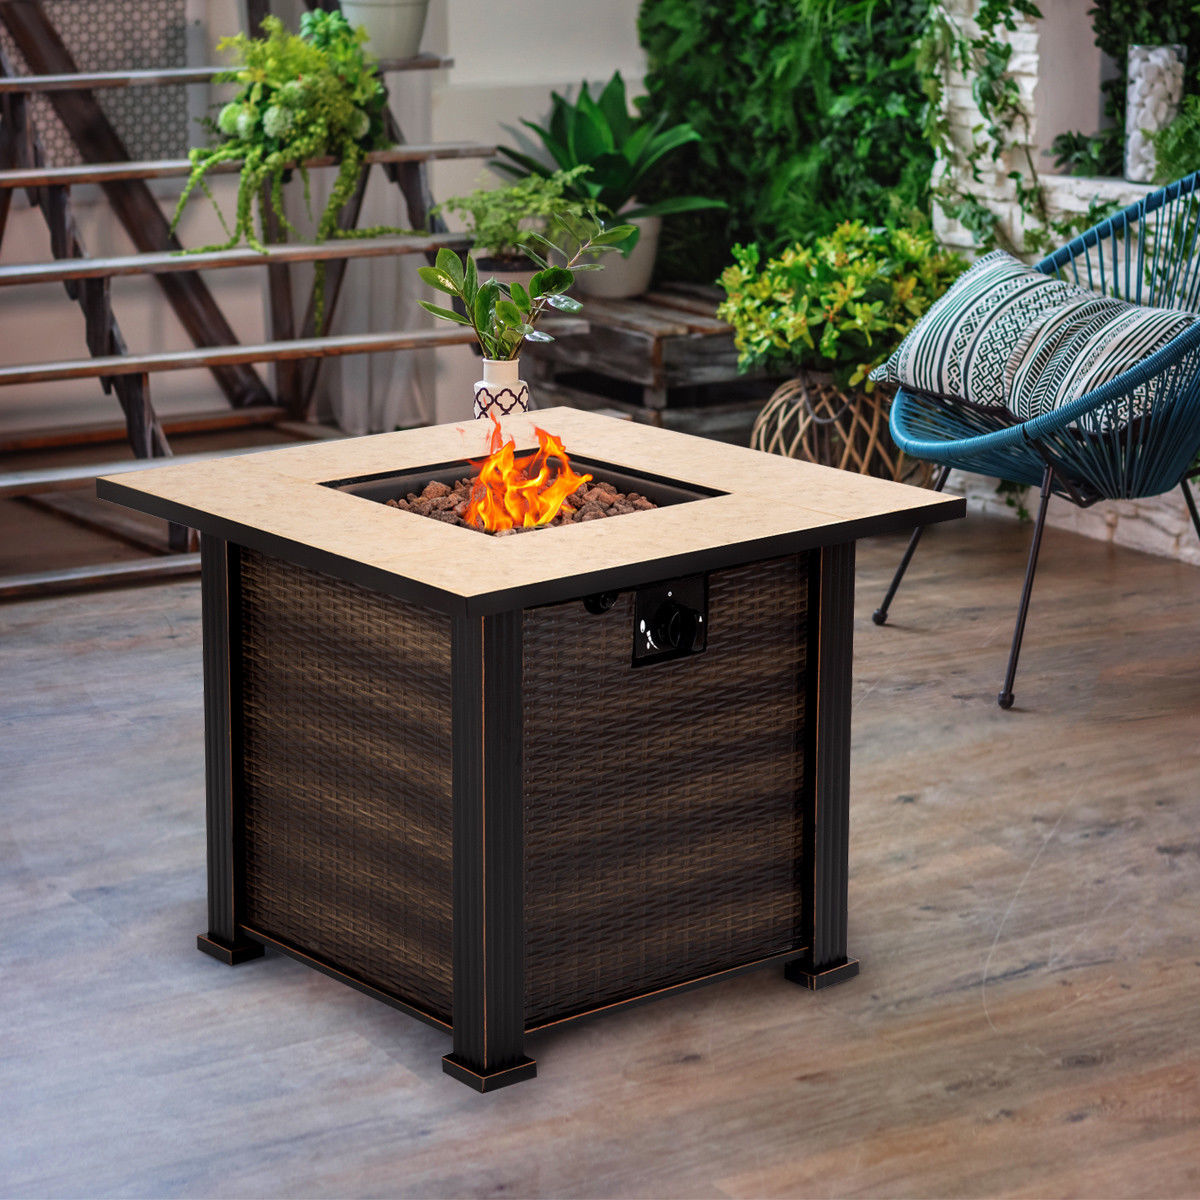 "30"" Square Propane Gas Fire Pit 50000 BTUs Heater Outdoor Table Fireplace Cover 